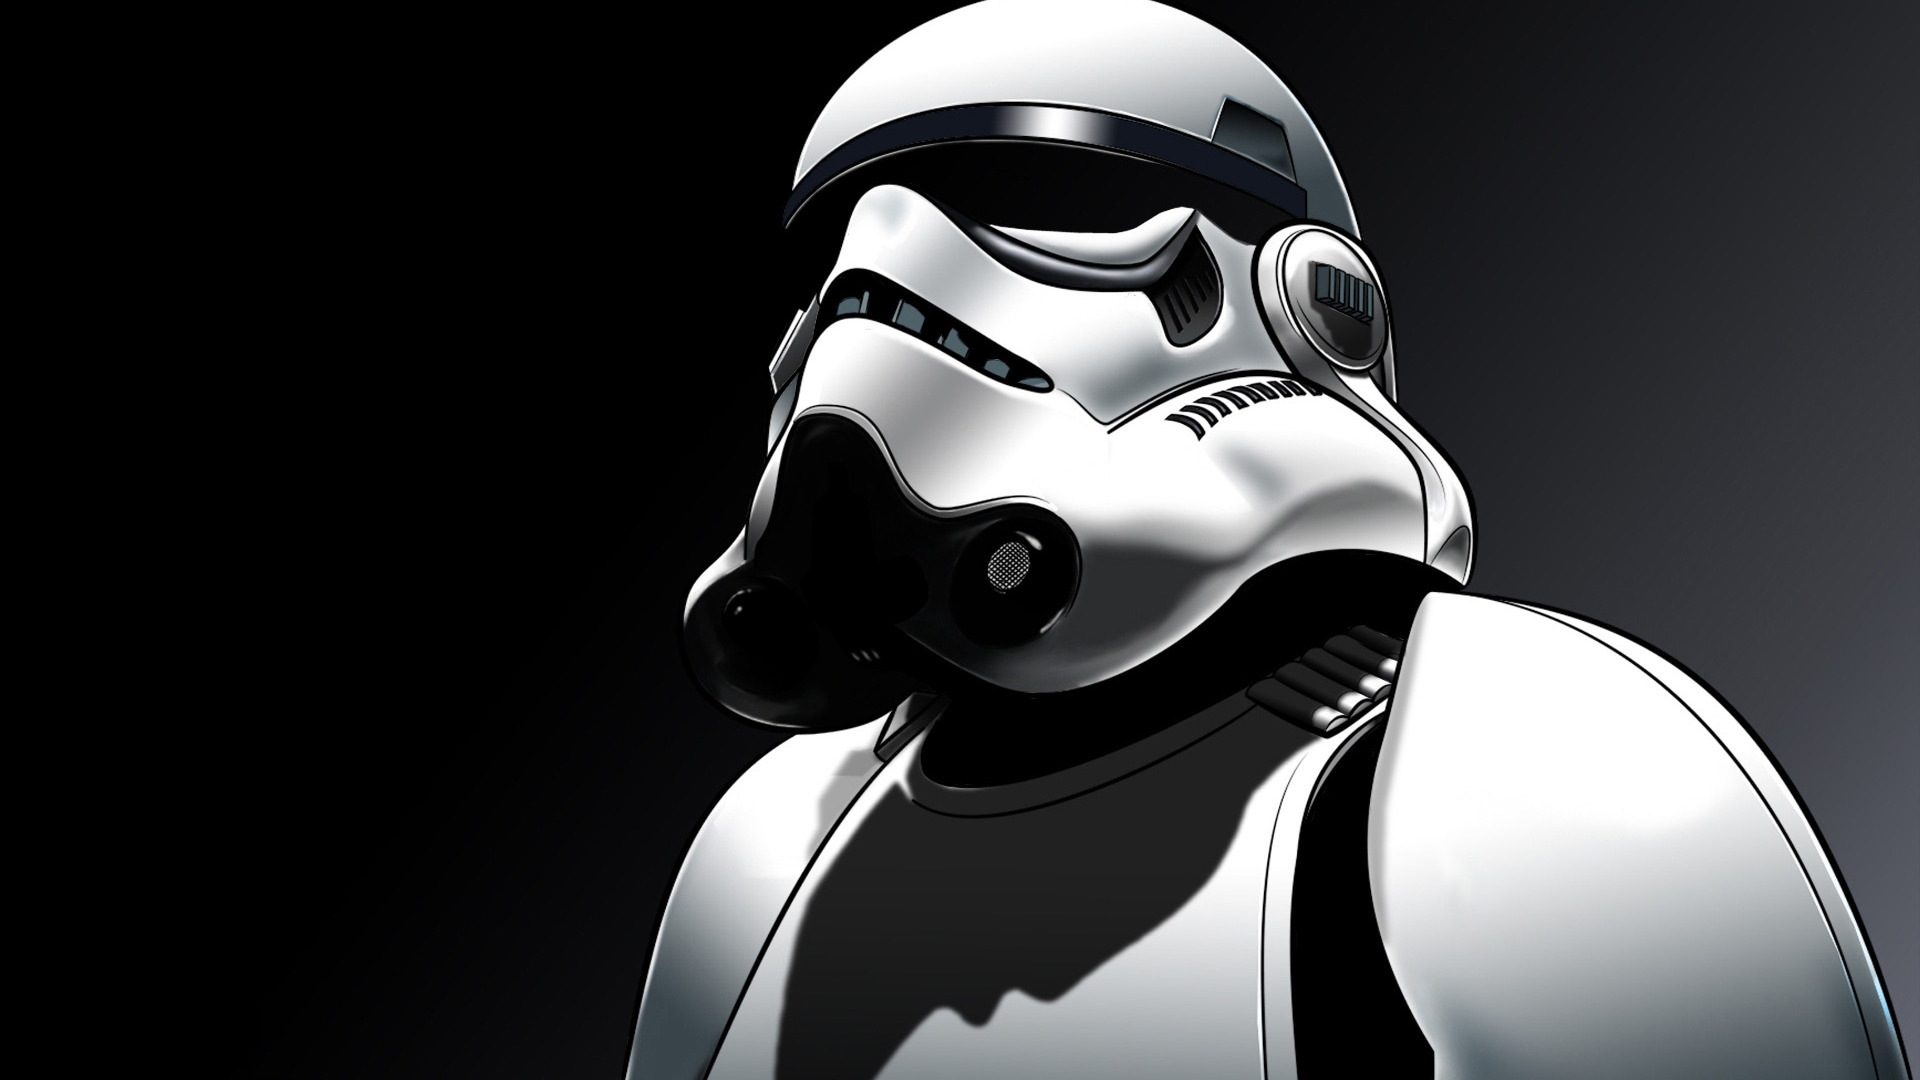 Download Star Wars Images HD Wallpaper of Movie - hdwallpaper2013.com